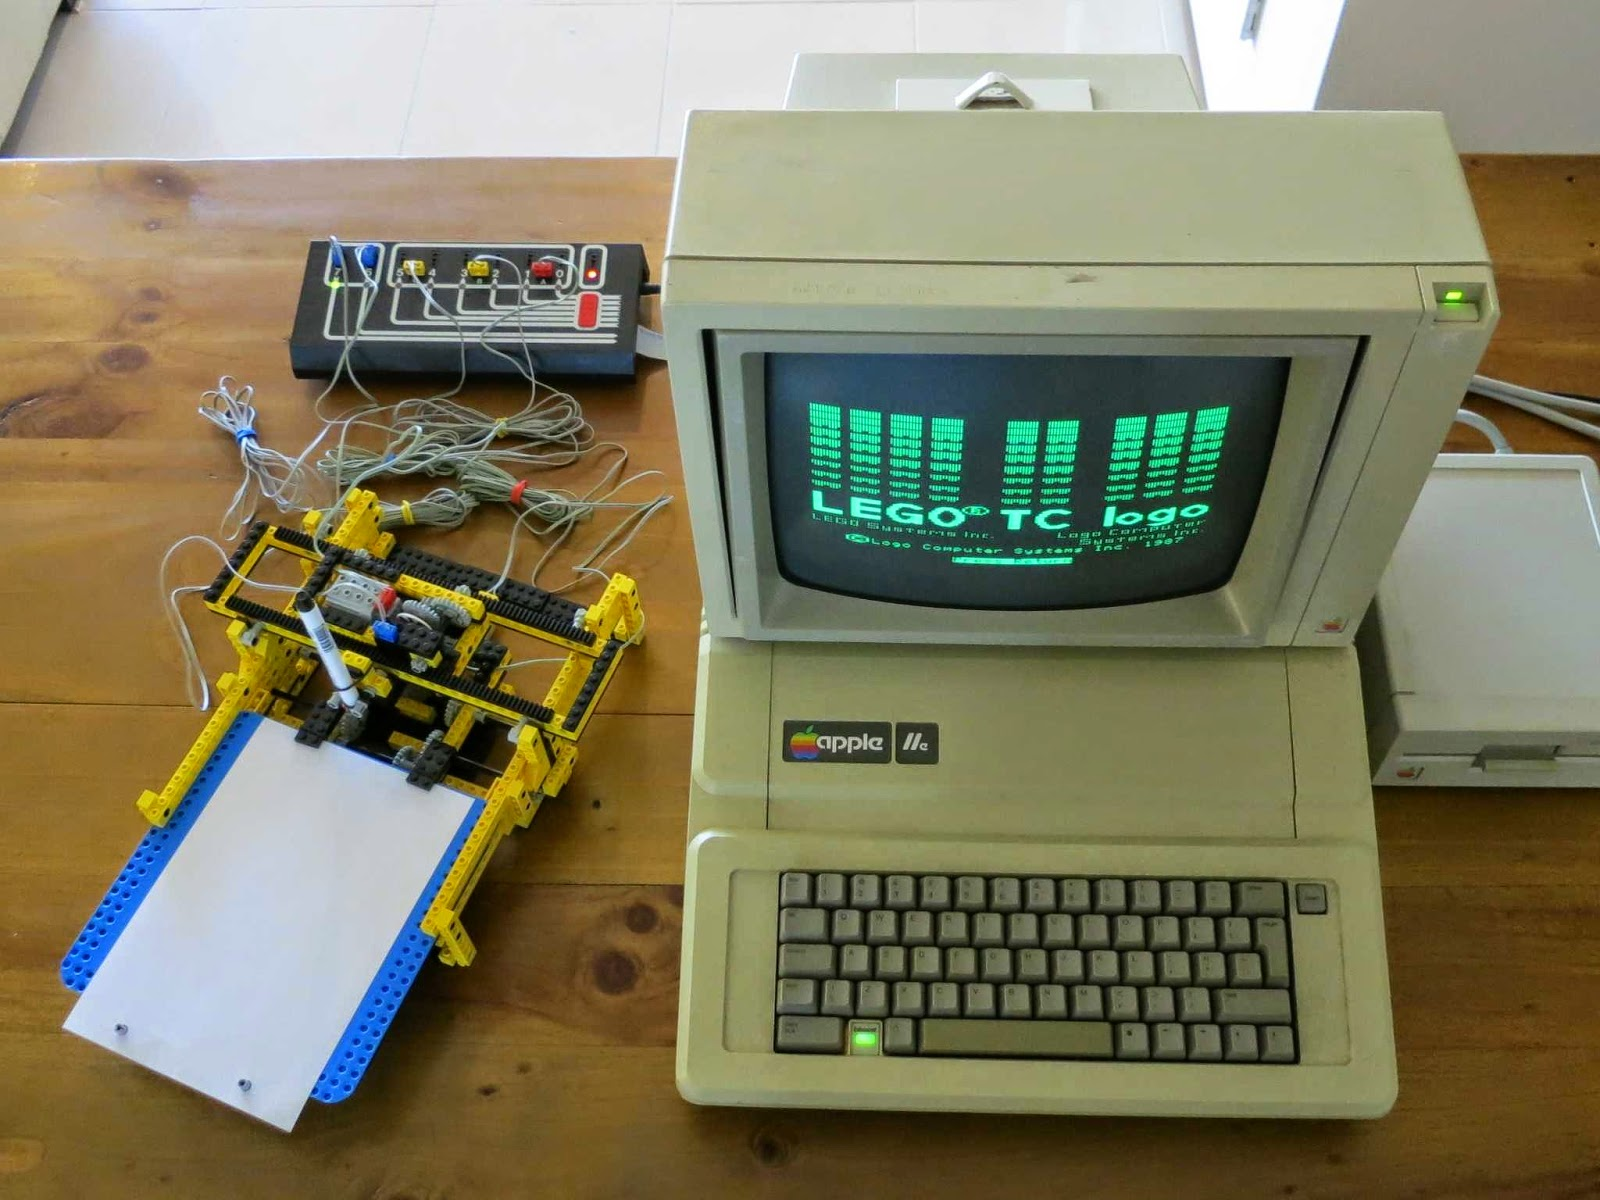 Apple II Projects: LEGO - LEGO's first programmable product